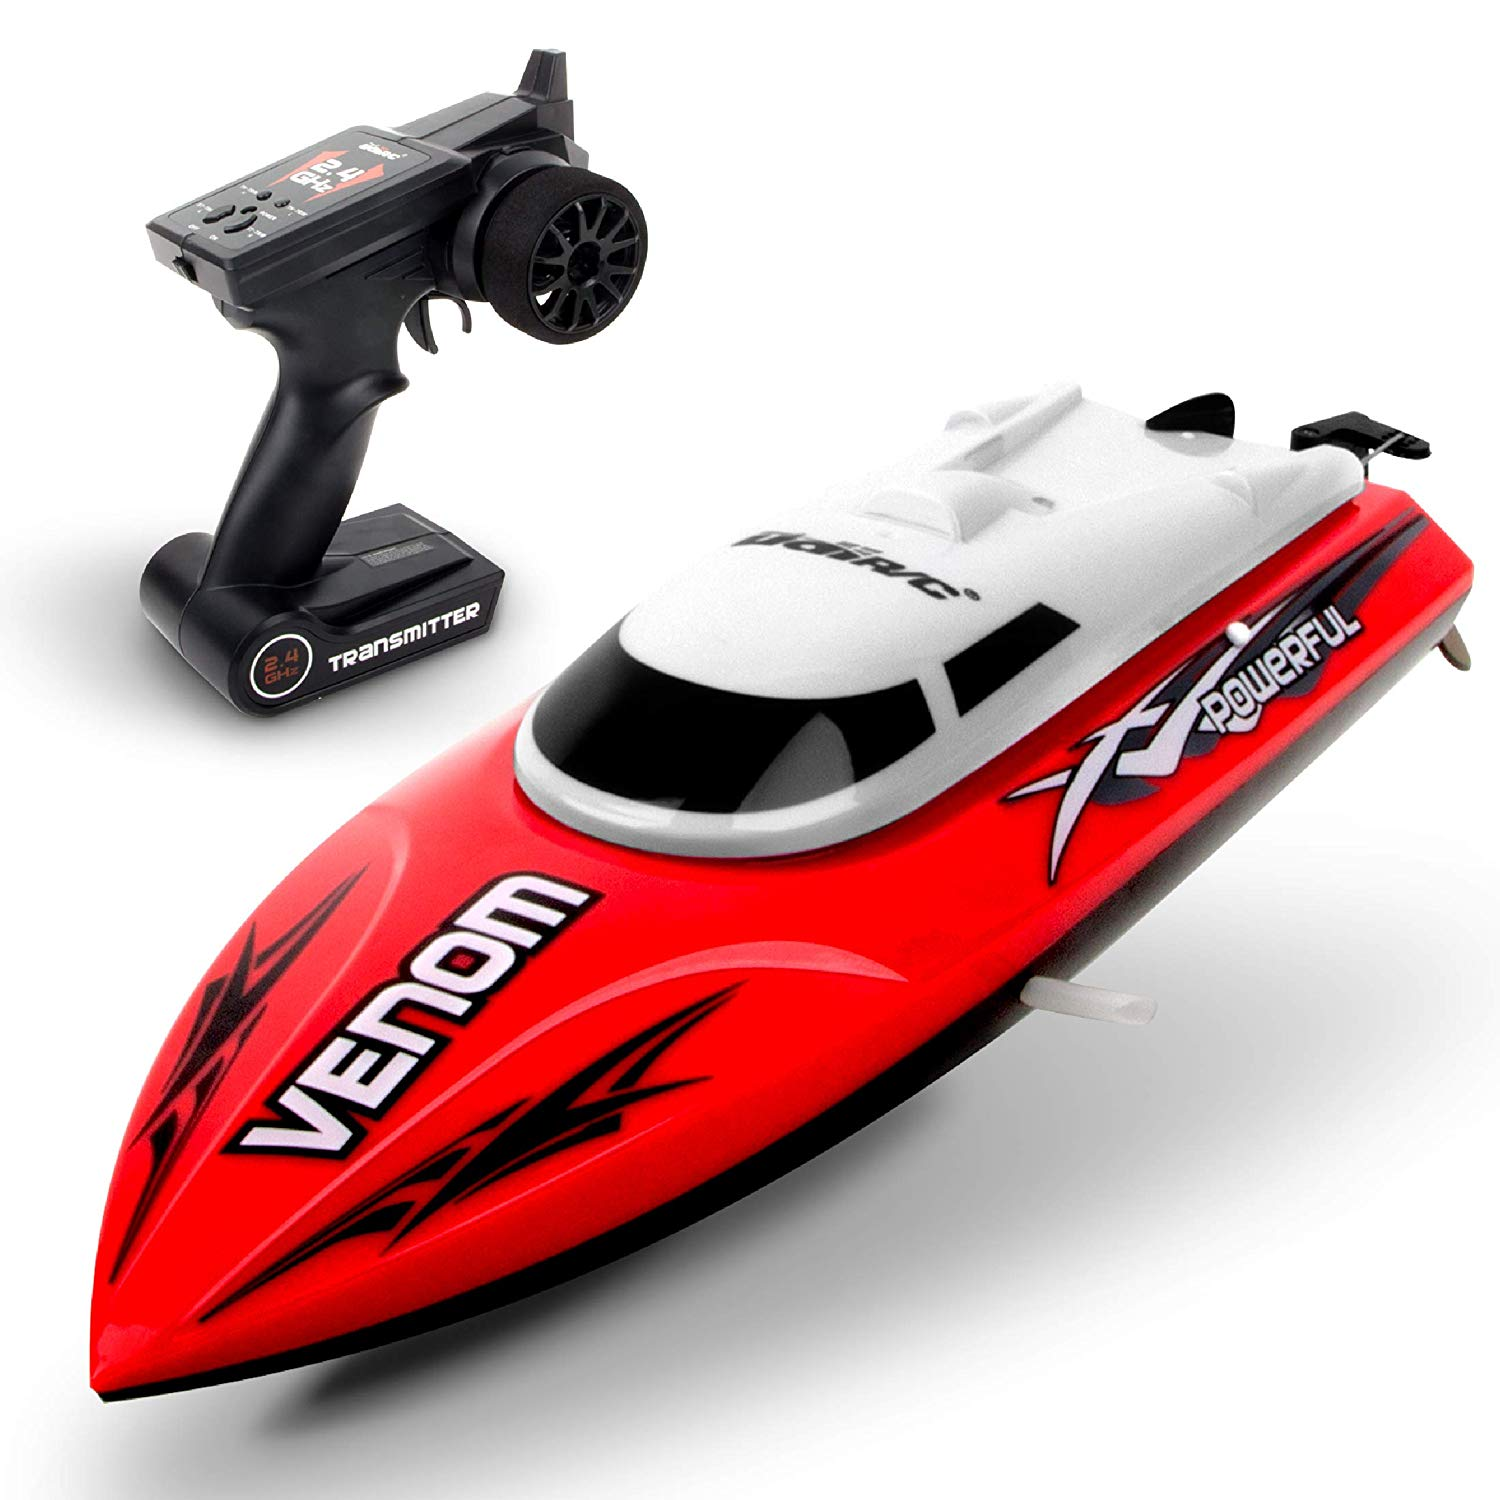 Remote Control Boat for Pools and Lakes